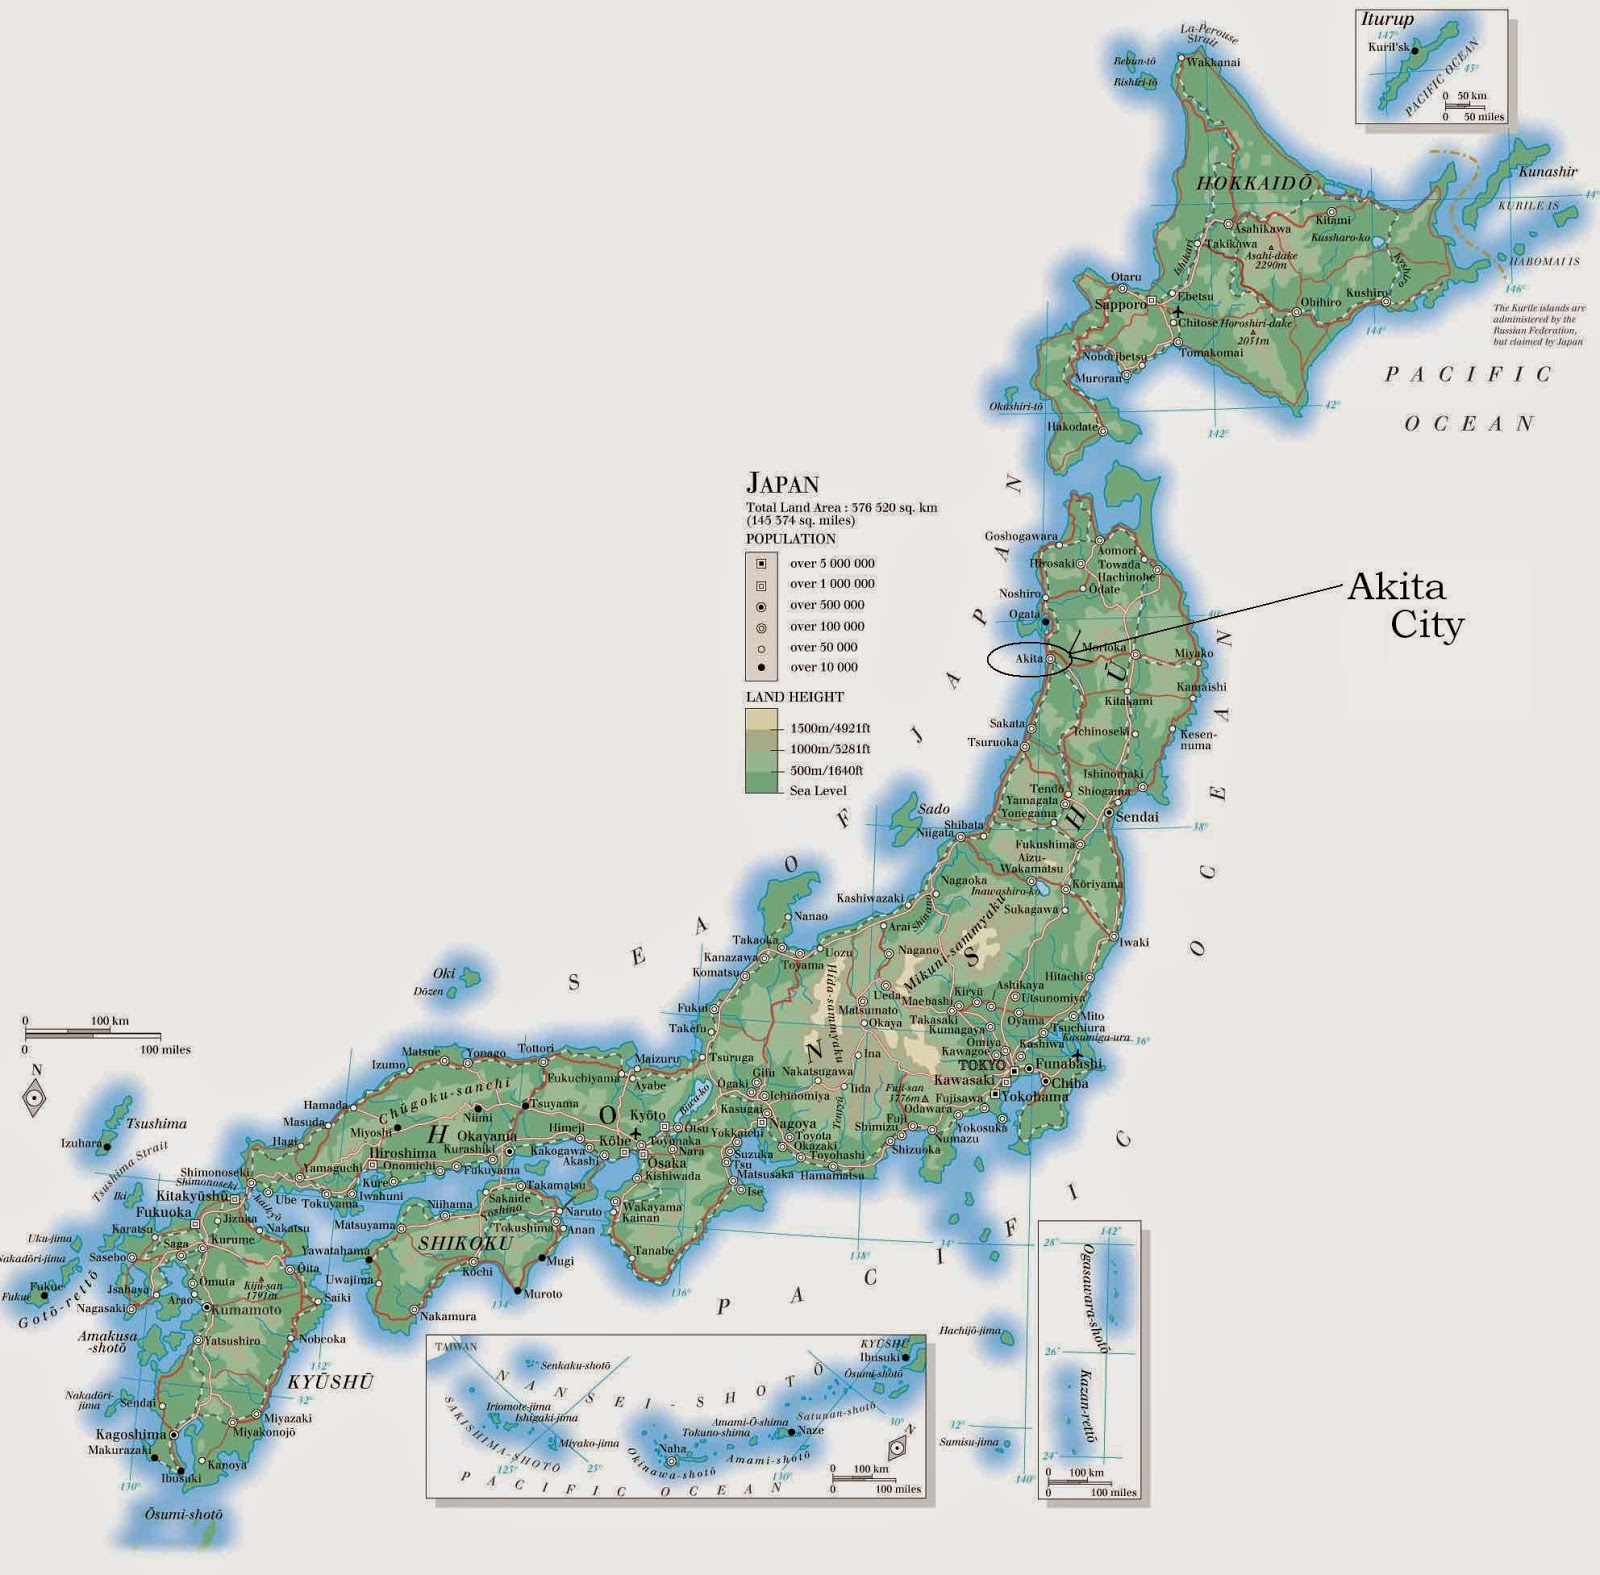 Japan elevation map with cities and boundaries